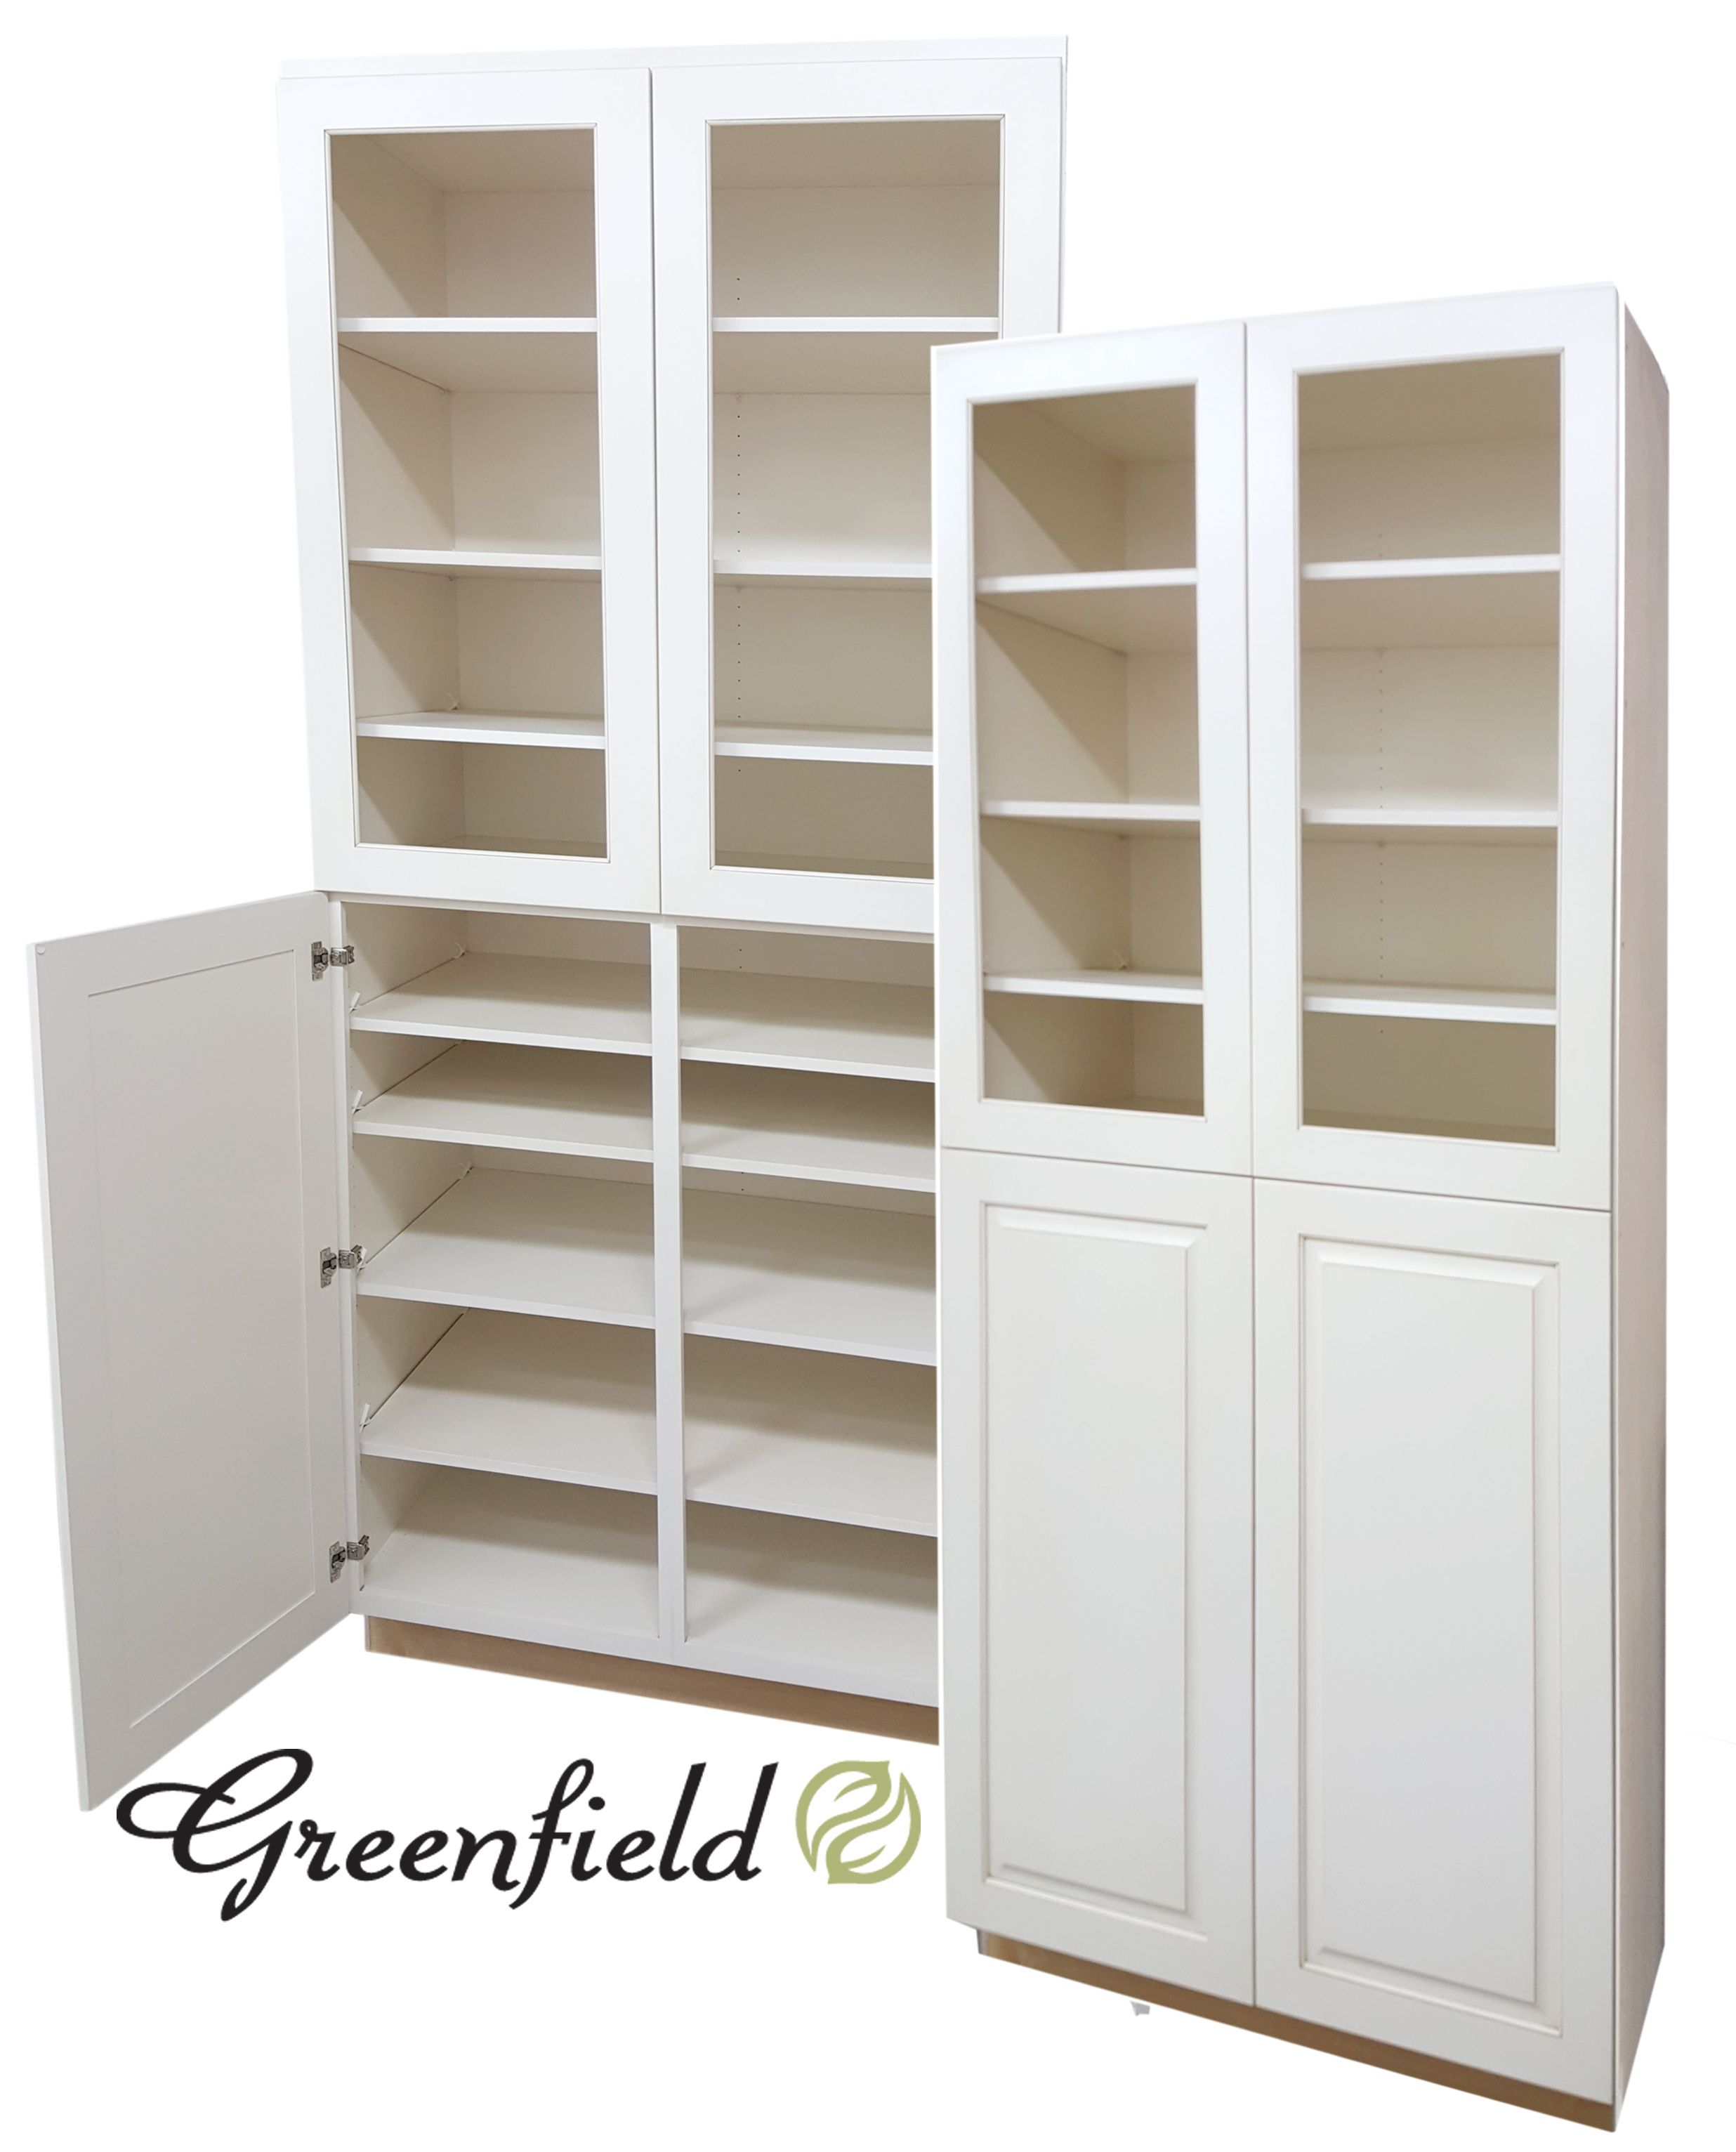 Love This Tall Utility Cabinet For Her Closet Jackson J Door Style In Glacier With Brown Glaze